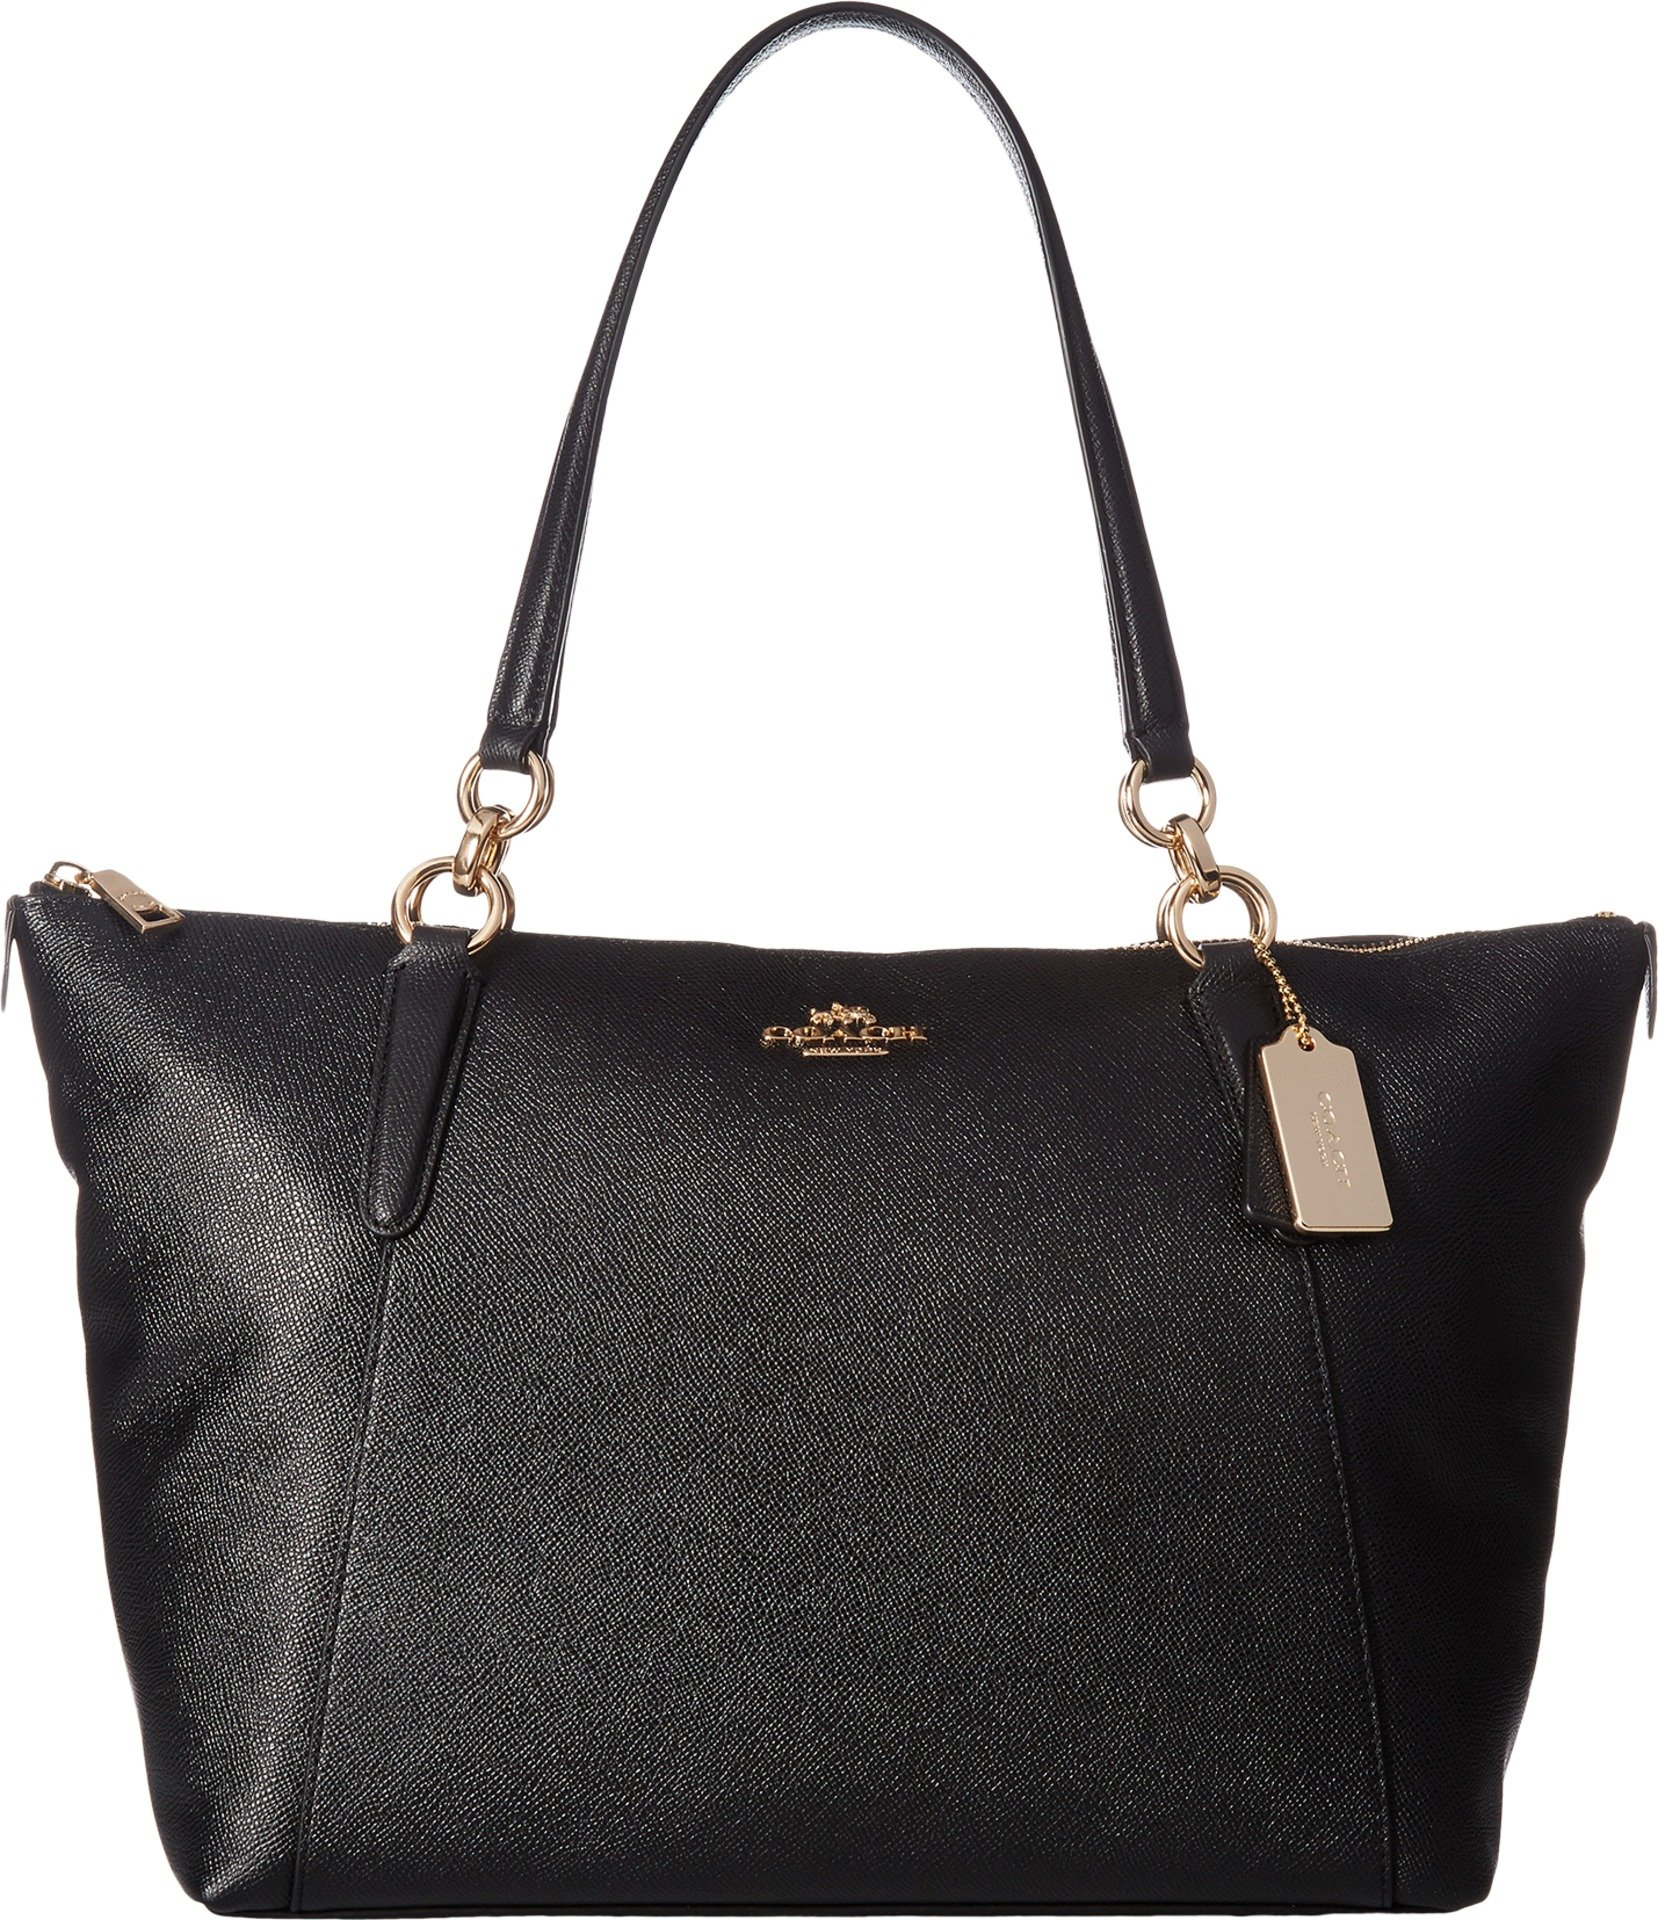 COACH Women's Crossgrain Ava Tote Im/Black One Size by Coach (Image #1)